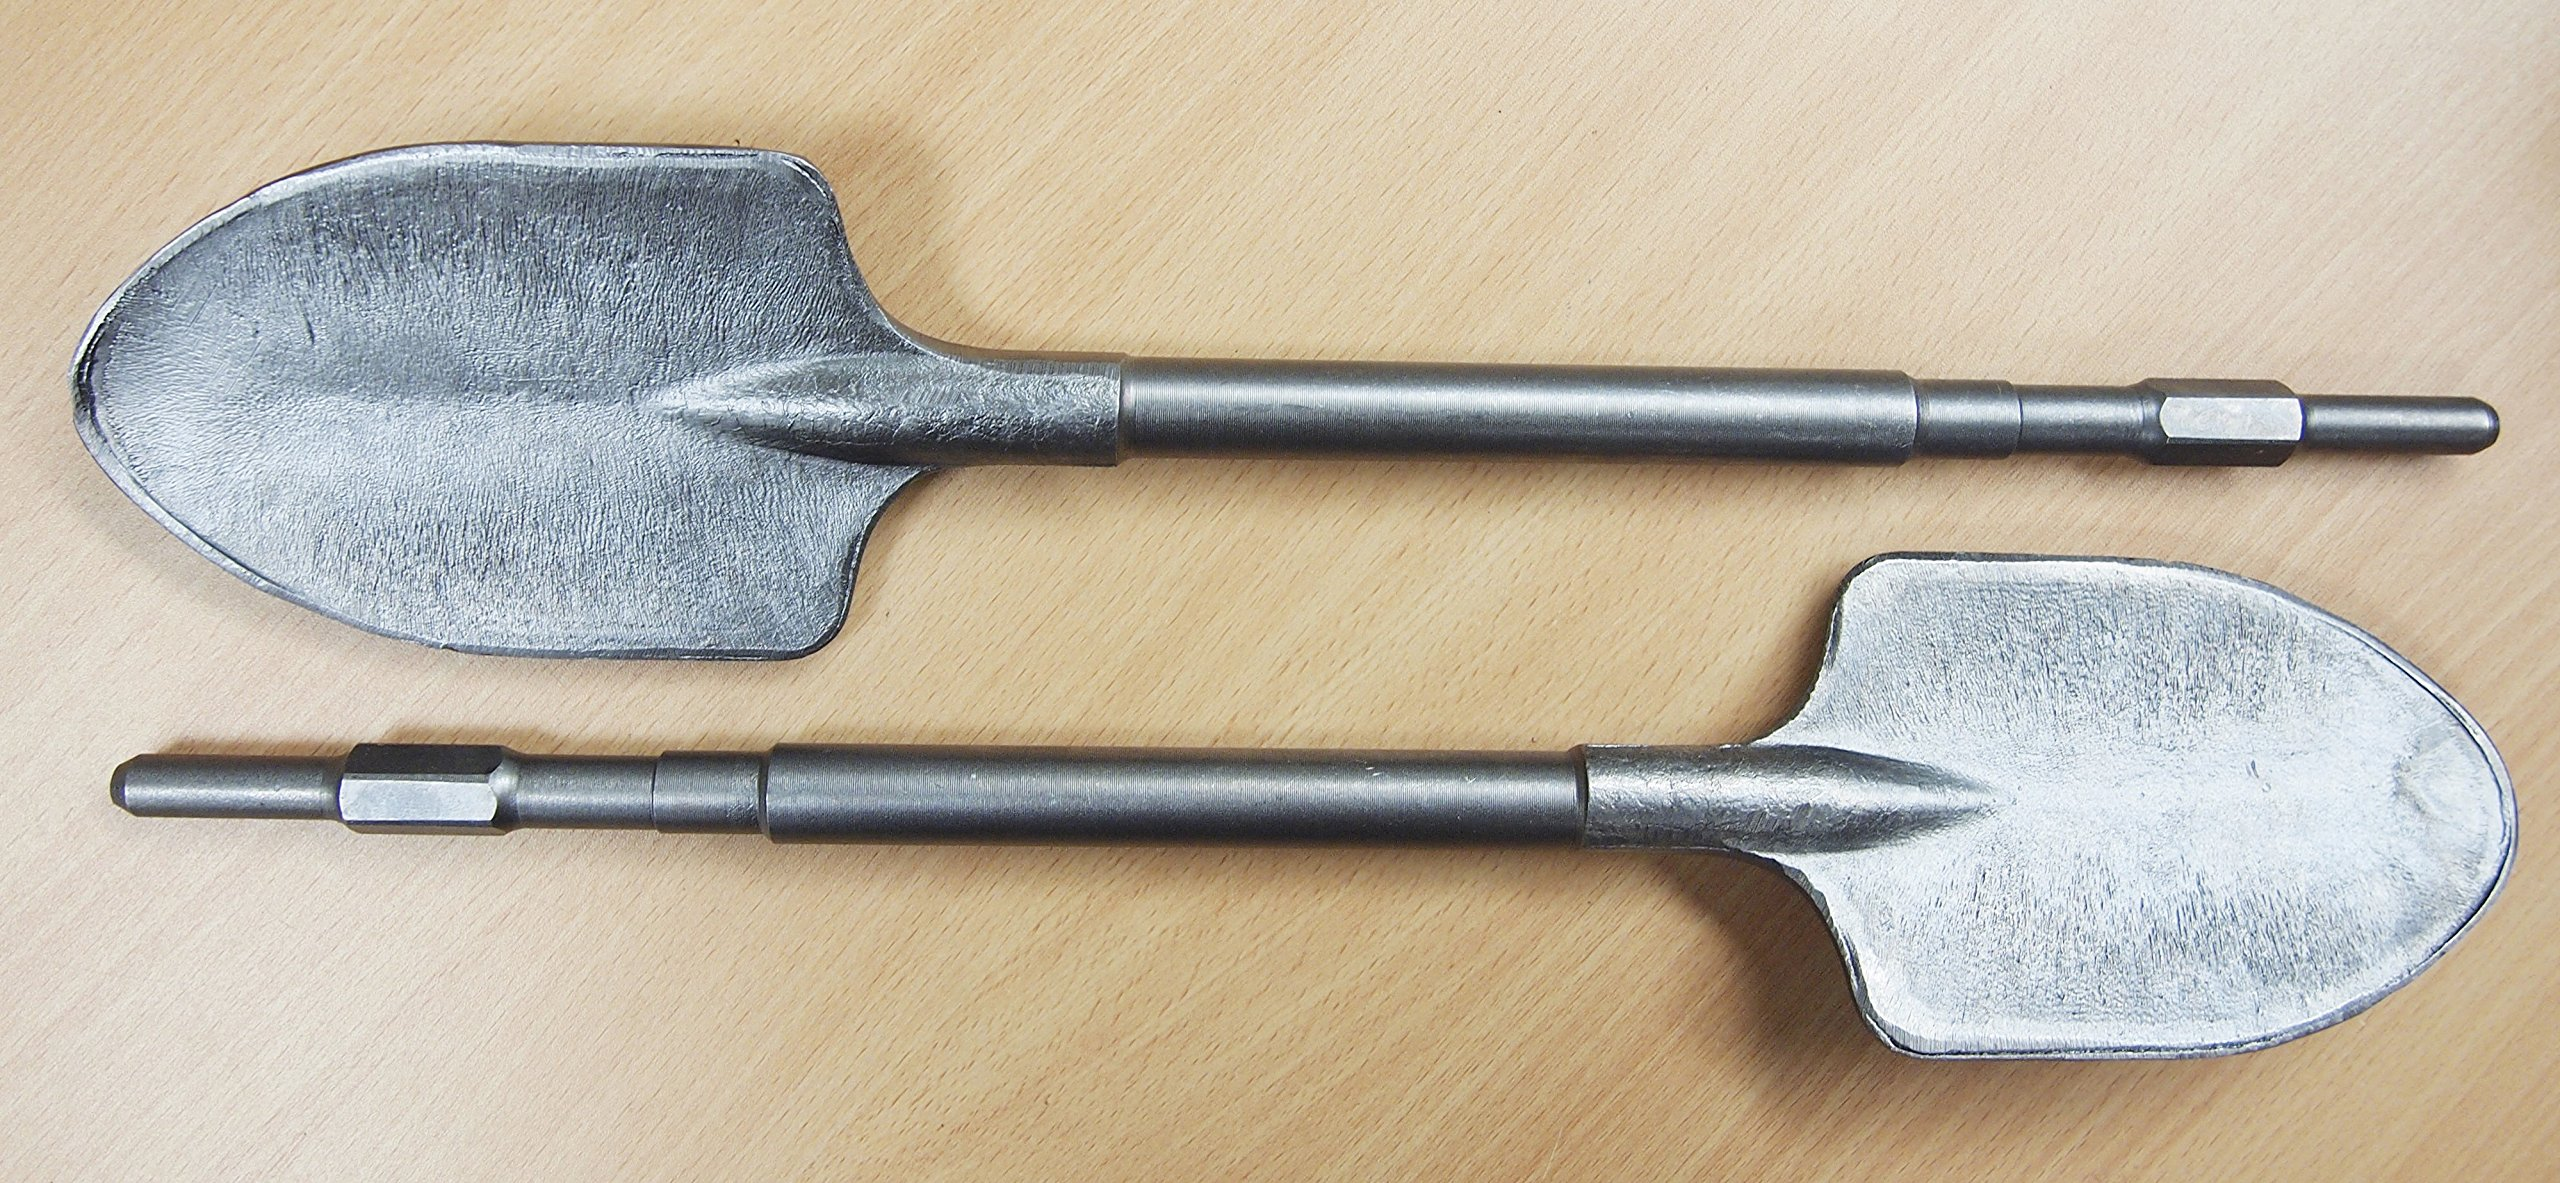 2PC Clay Spade Shovel 4-1/4'' x 19-1/2'' Hex 17mm for Makita HM0810 HR3500